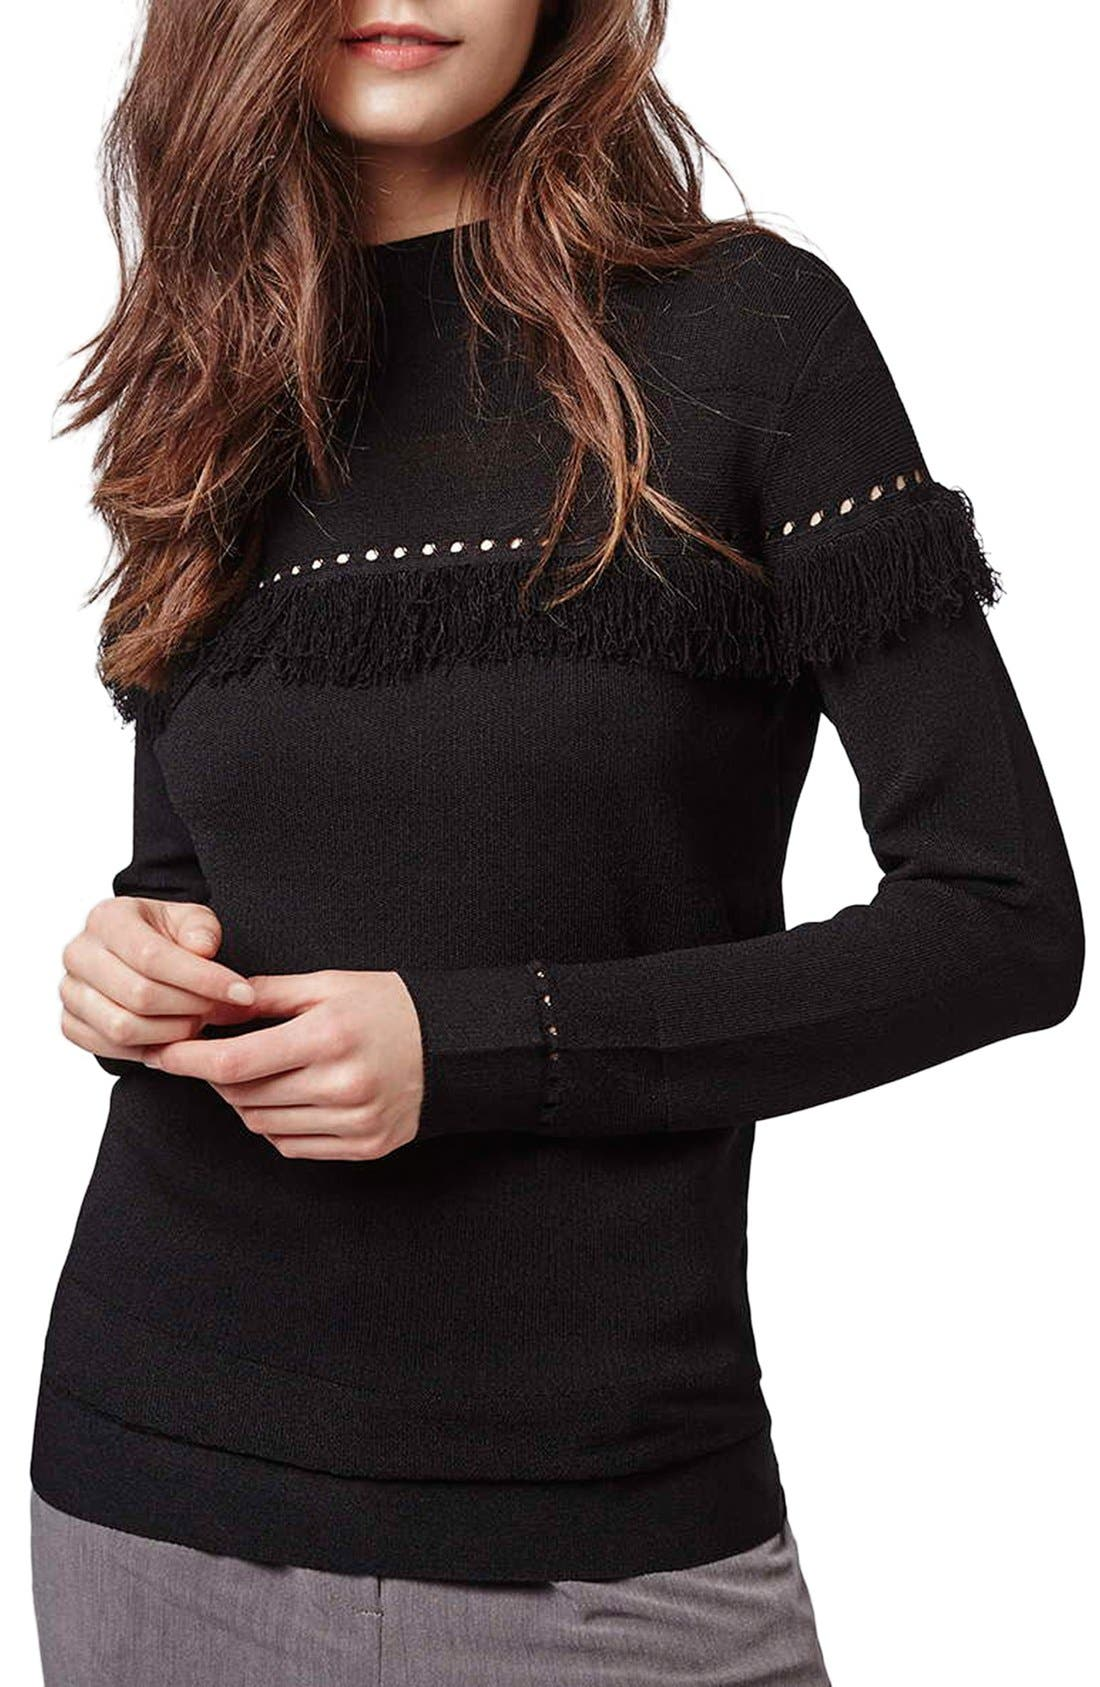 Alternate Image 1 Selected - Topshop Perforated Fringe Sweater